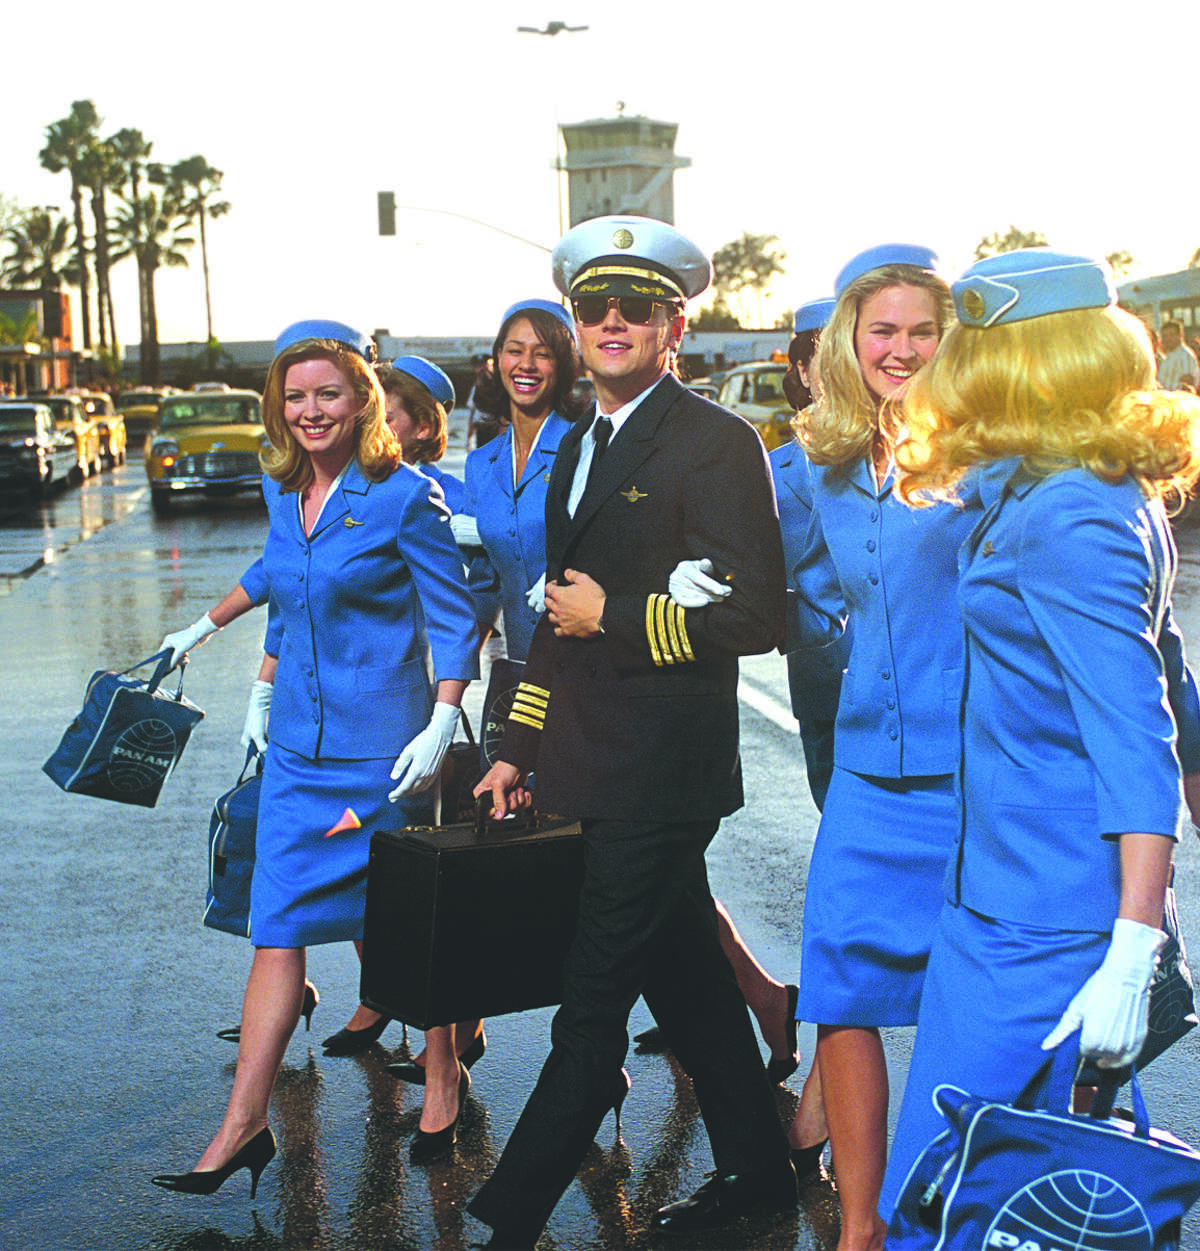 In the true story 'Catch Me If You Can,' DiCaprio portrays Frank Abagnale, who passed himself off as a lawyer, a doctor and an airline pilot.